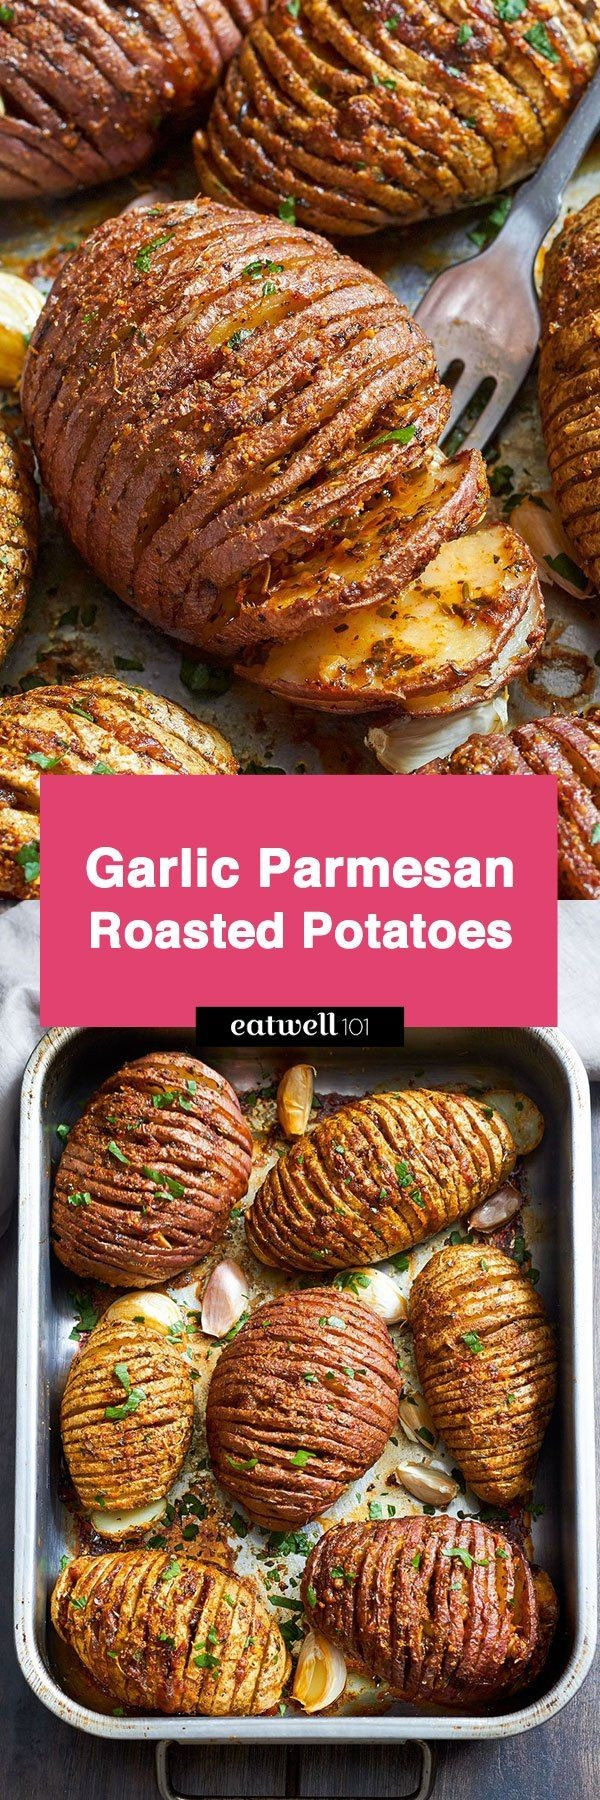 Get the recipe Garlic Parmesan Roasted Potatoes @recipes_to_go